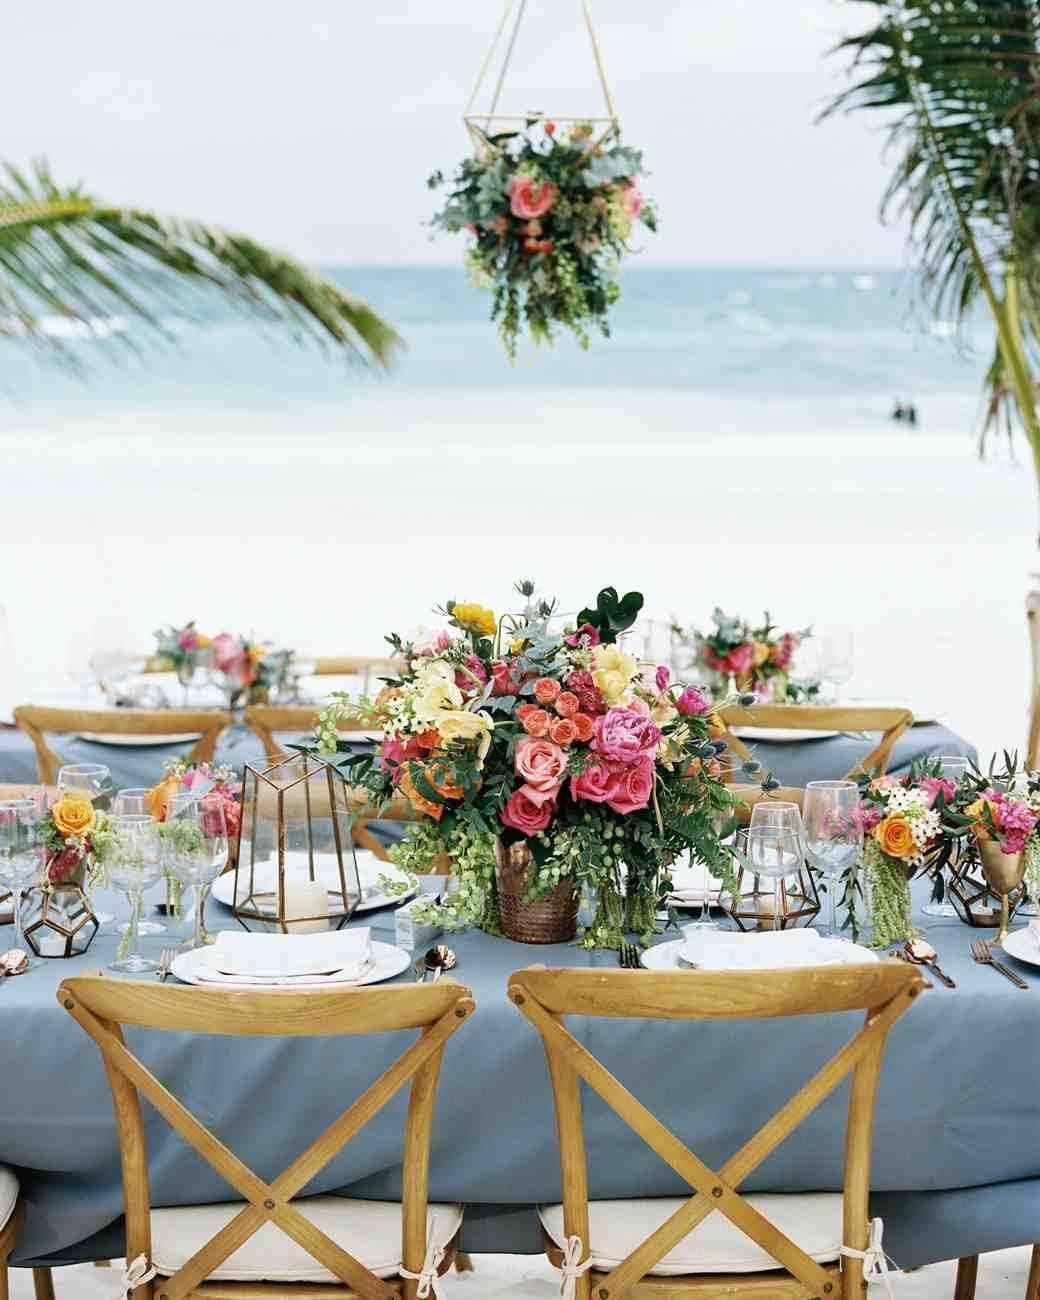 Beach Wedding Reception Ideas: 51 Beautiful Ideas From Beach Weddings